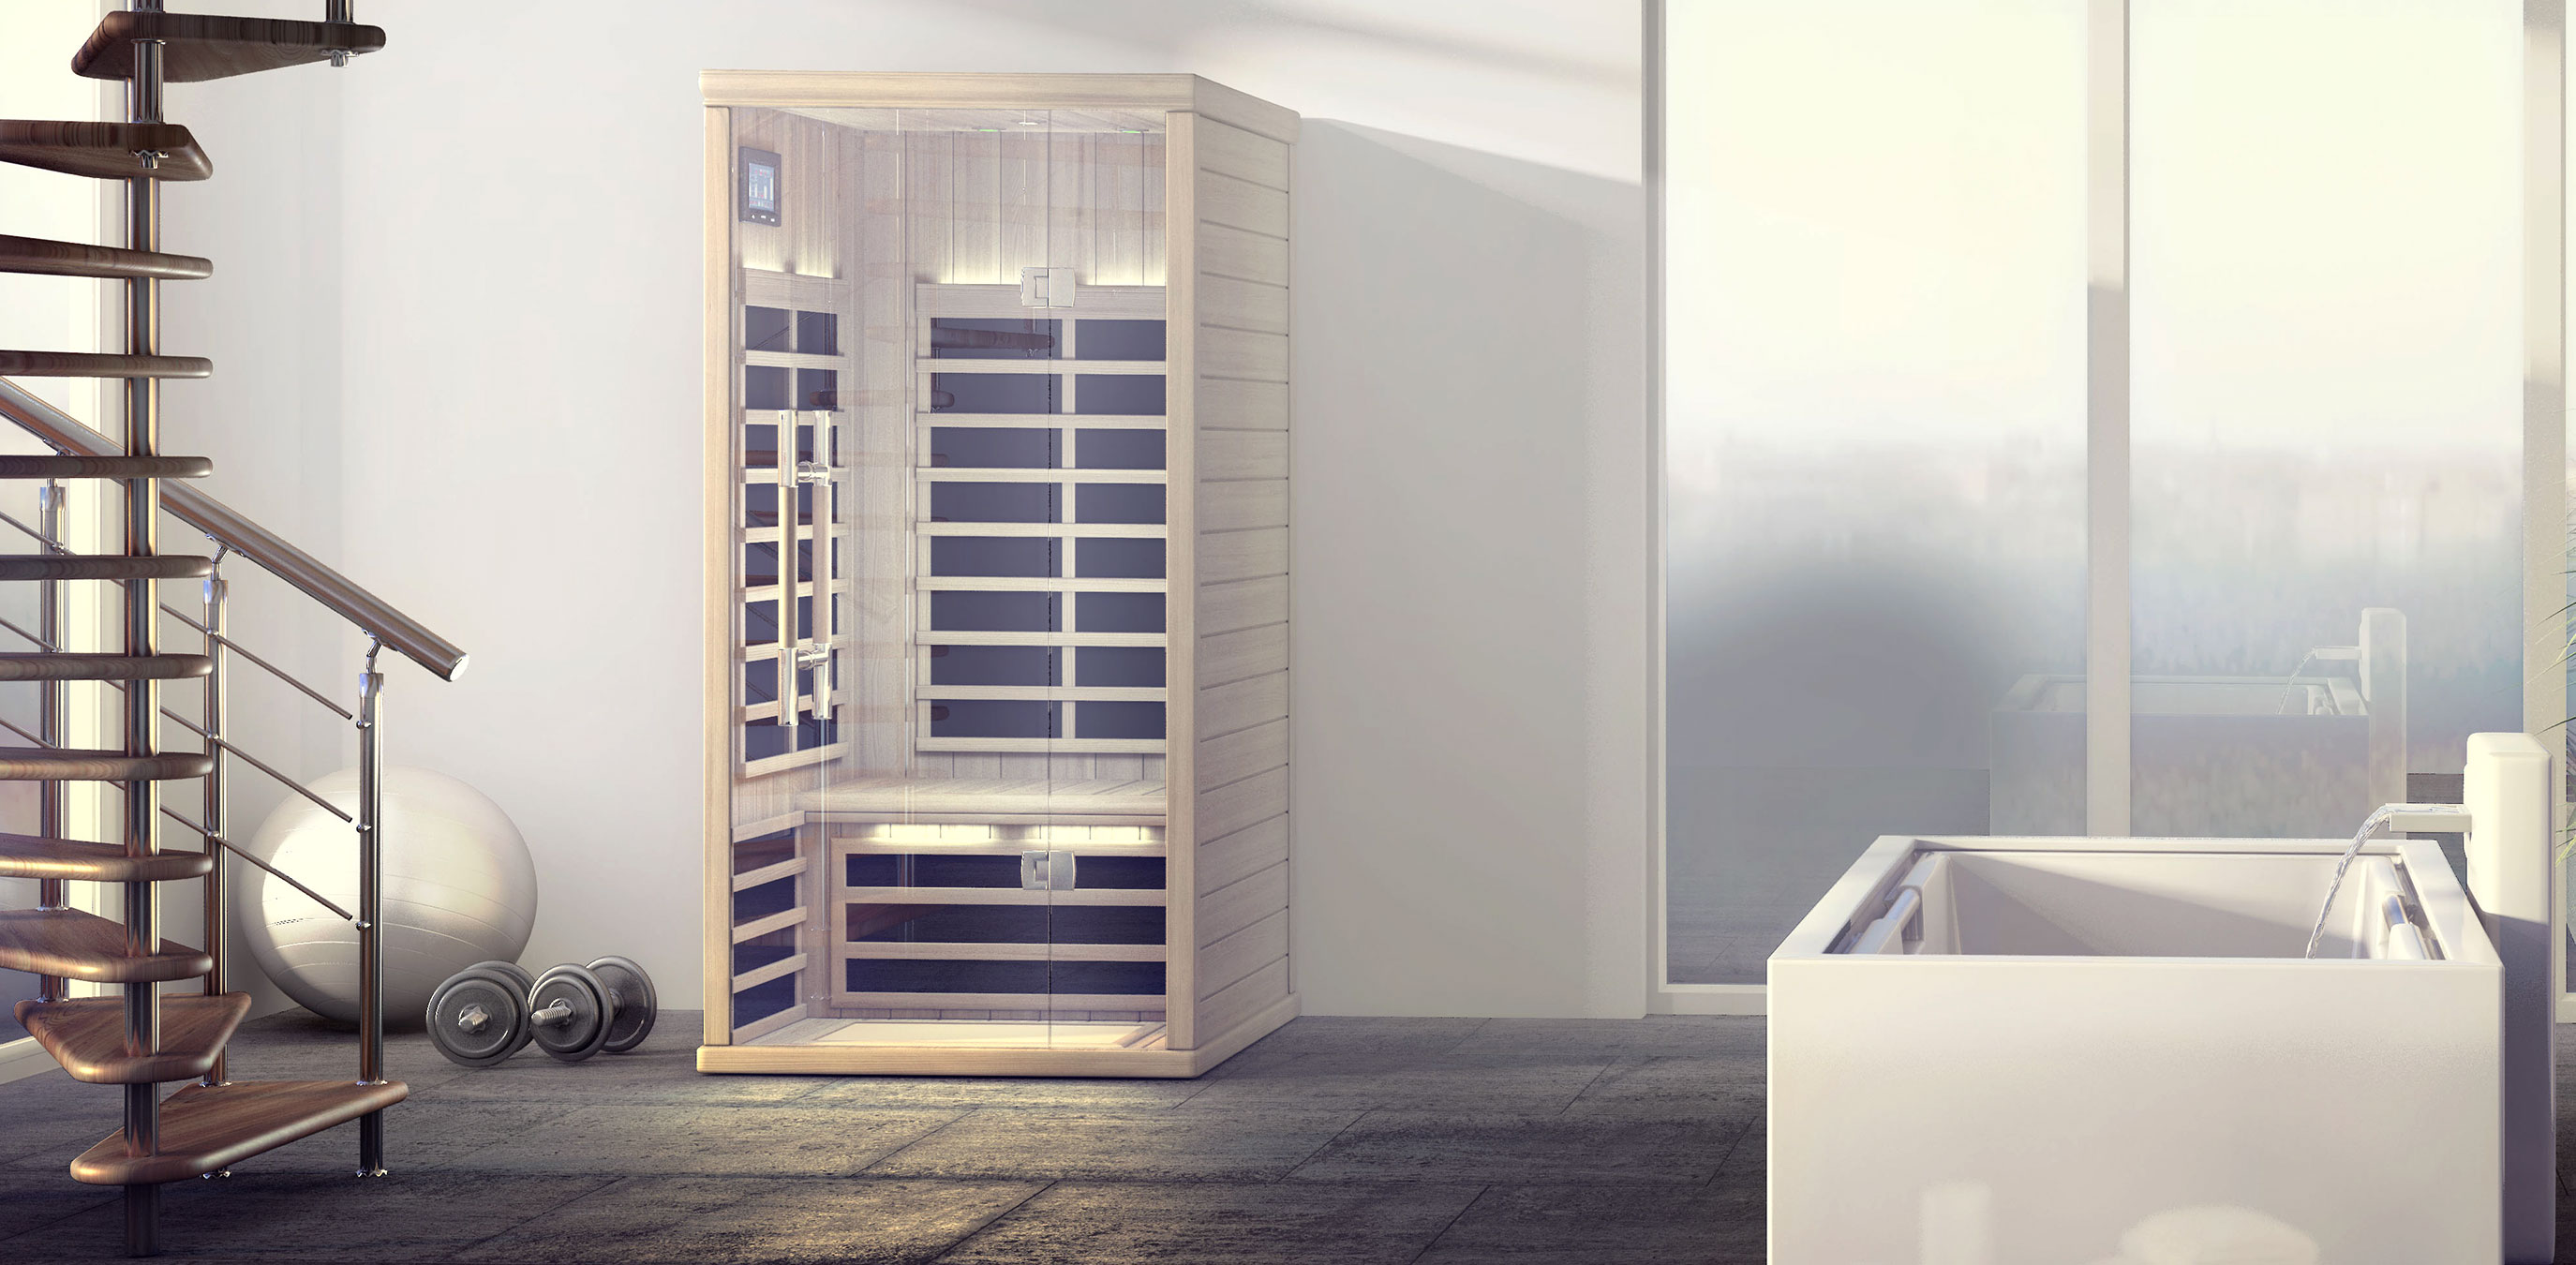 Review of the Finnleo s810 Sauna: 30 Days of Sweat featured image